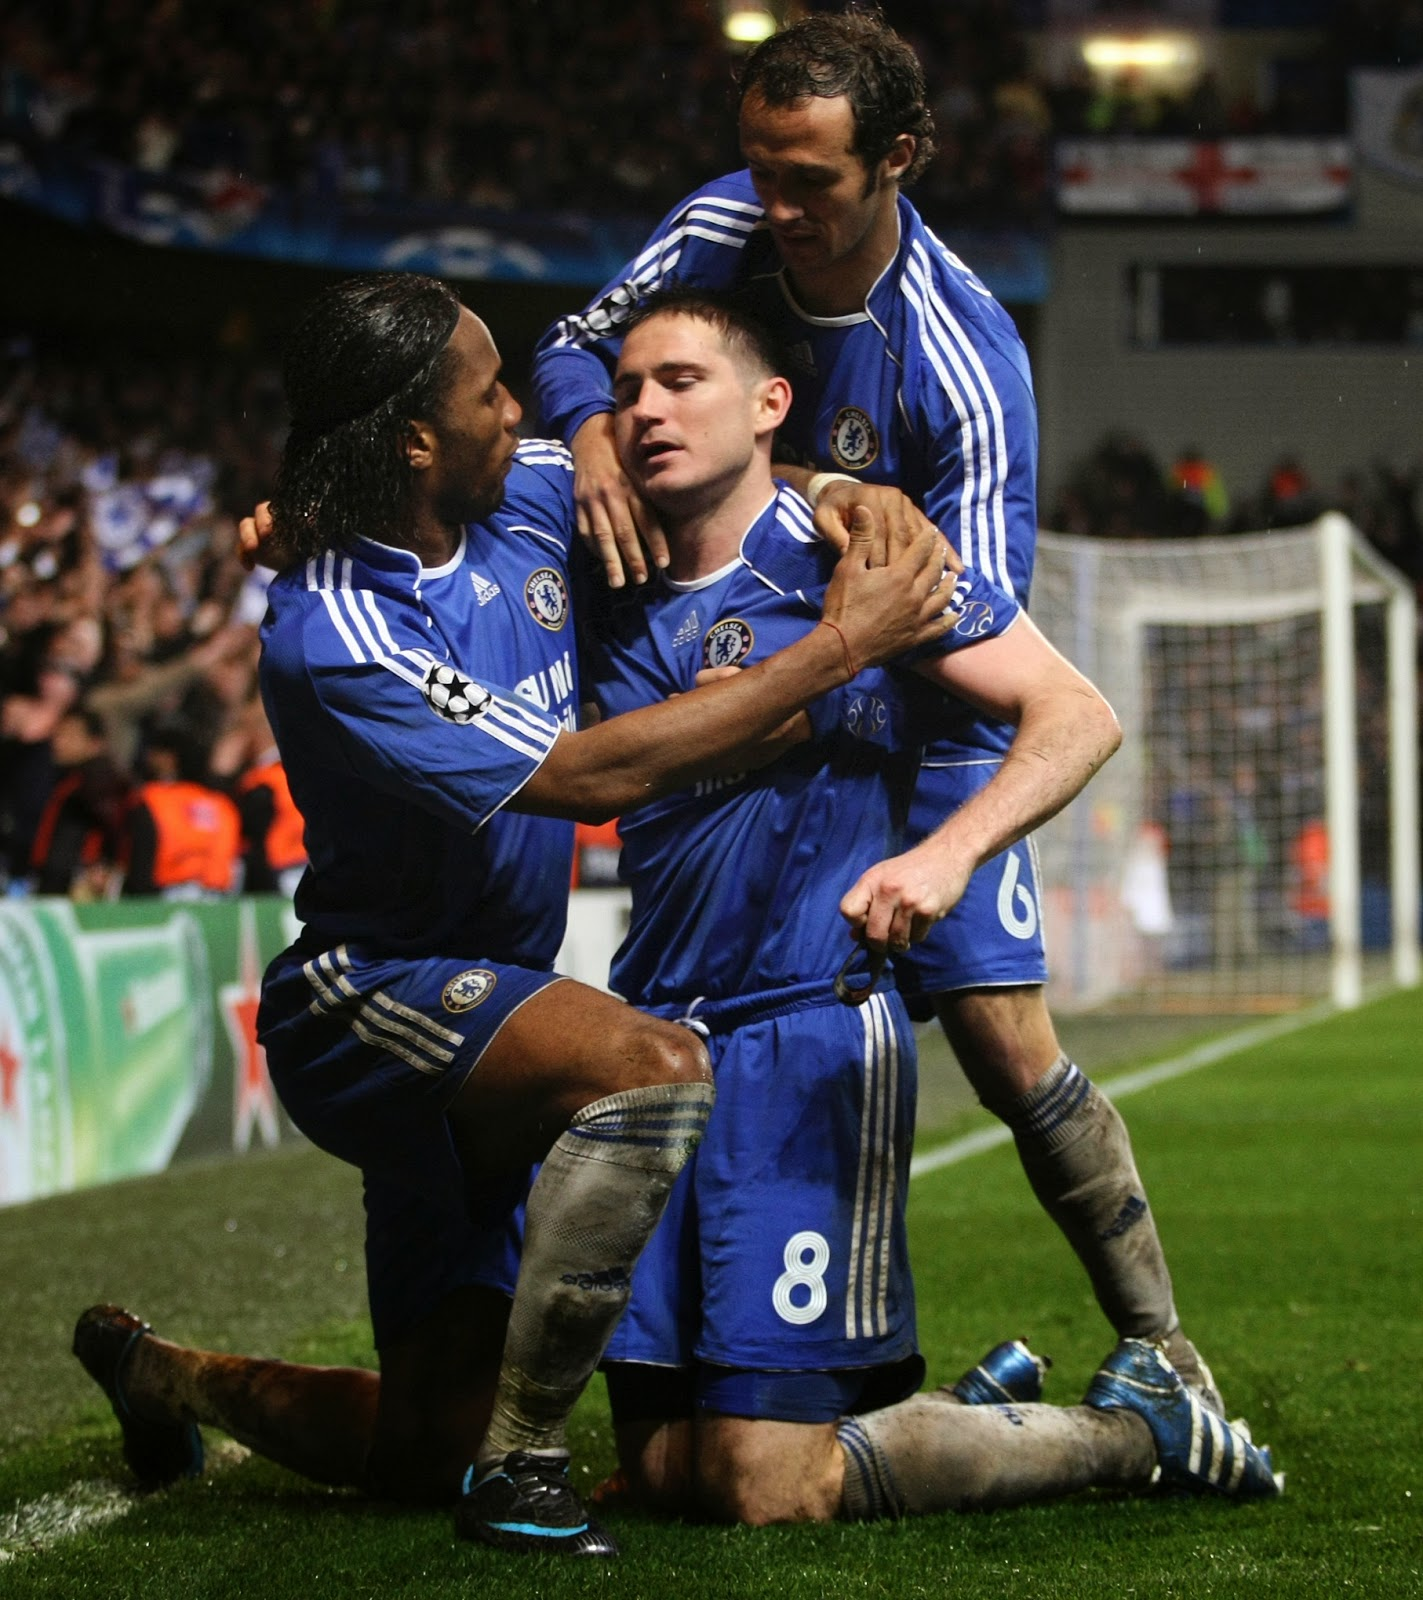 A photograph of Frank Lampard, Didier Drogba and Carvalho celebrating Lampard scoring a goal